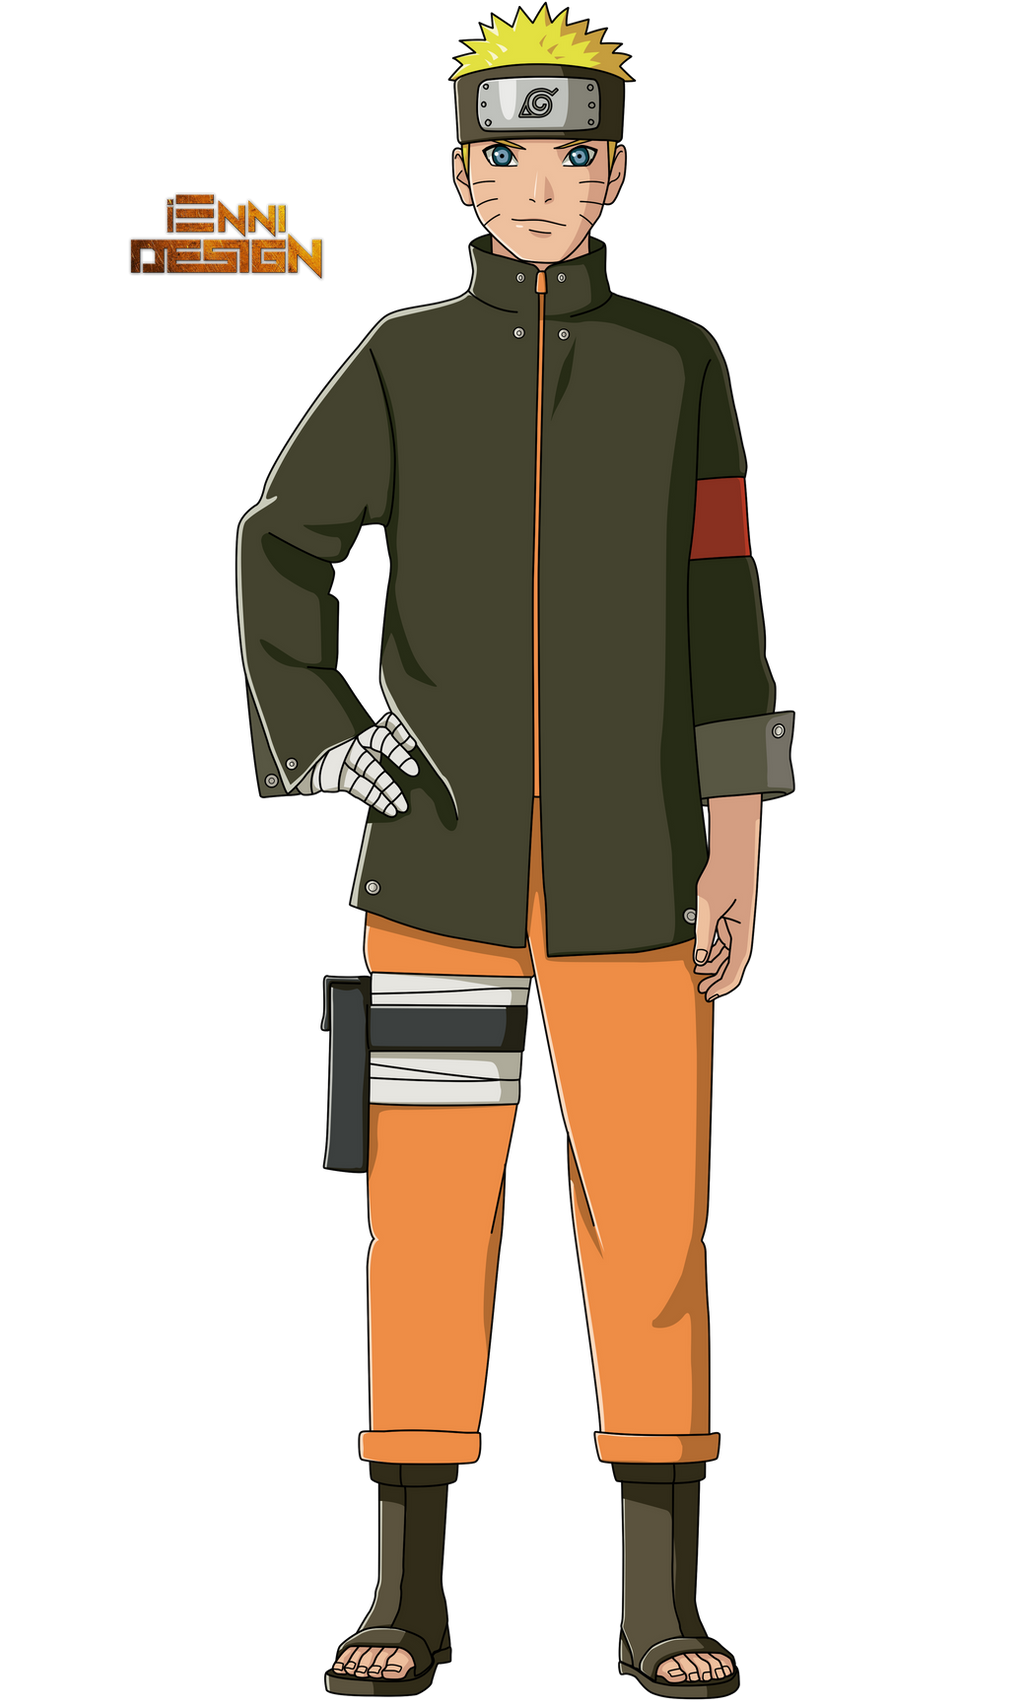 Naruto The Last Character Design Color : The last naruto movie uzumaki by iennidesign